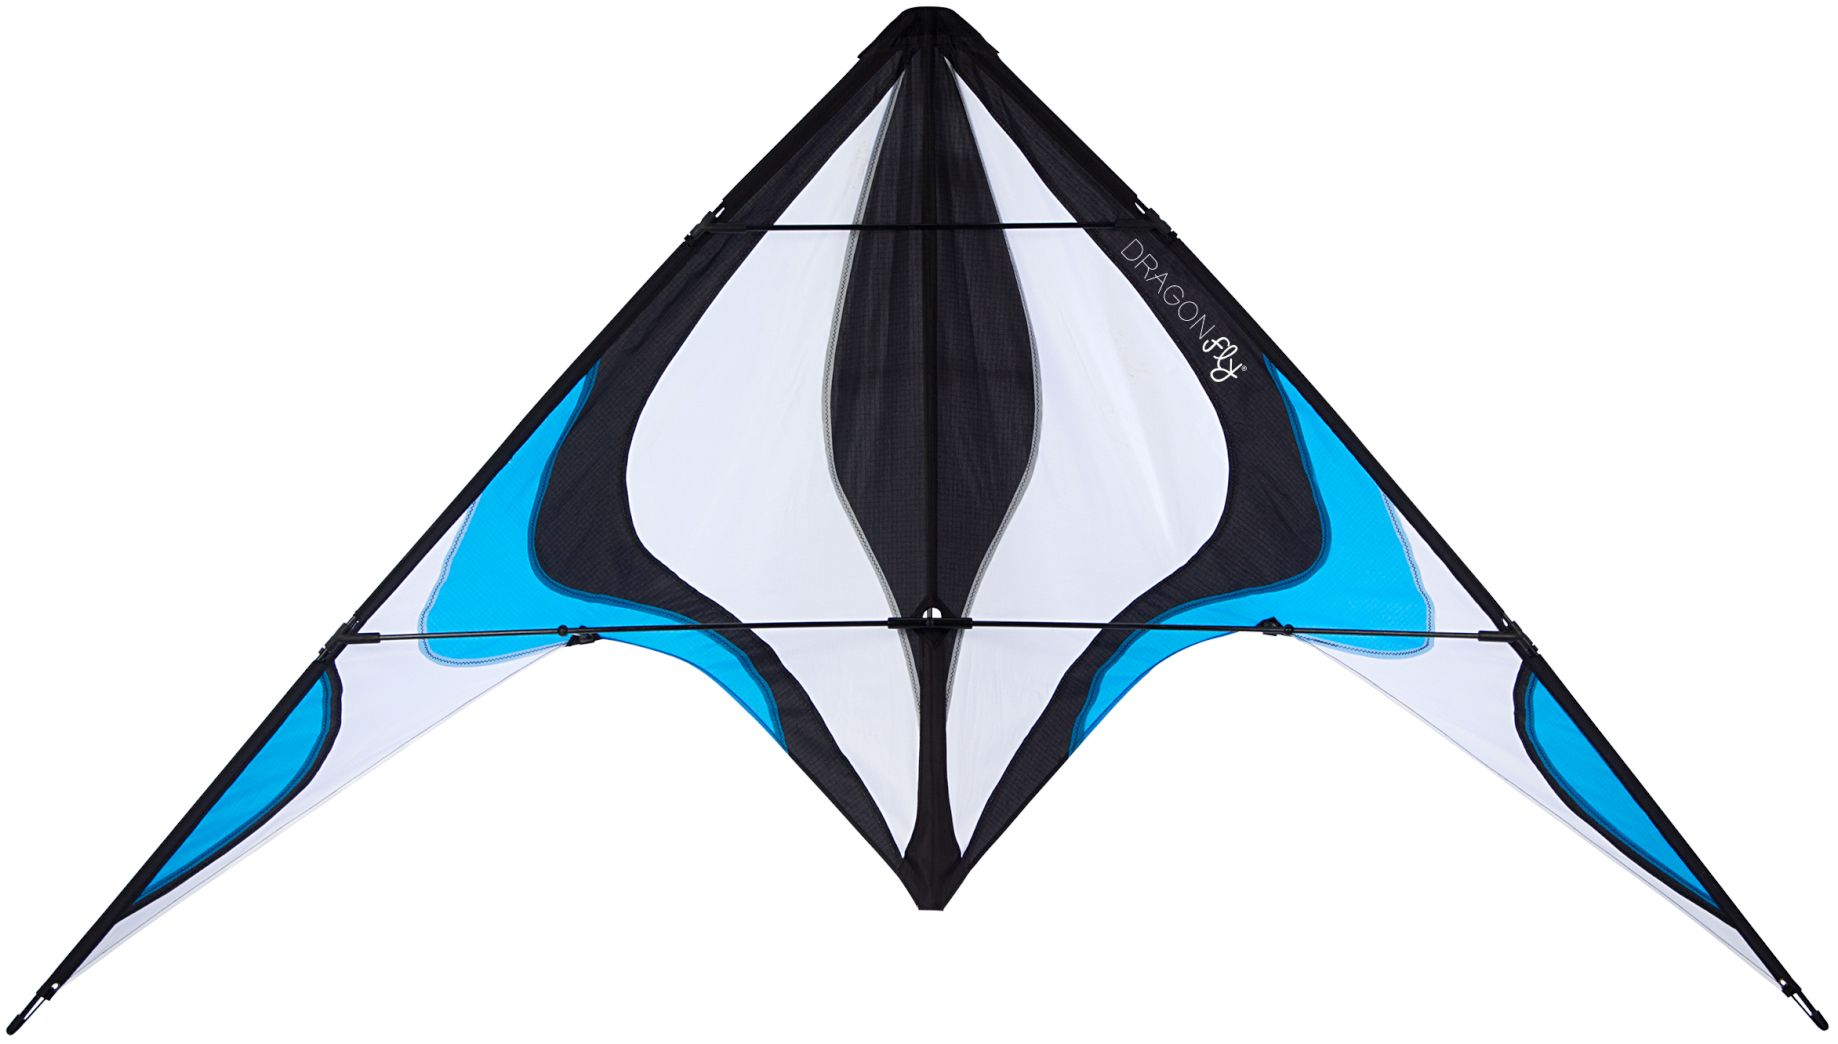 delta stunt kite instructions